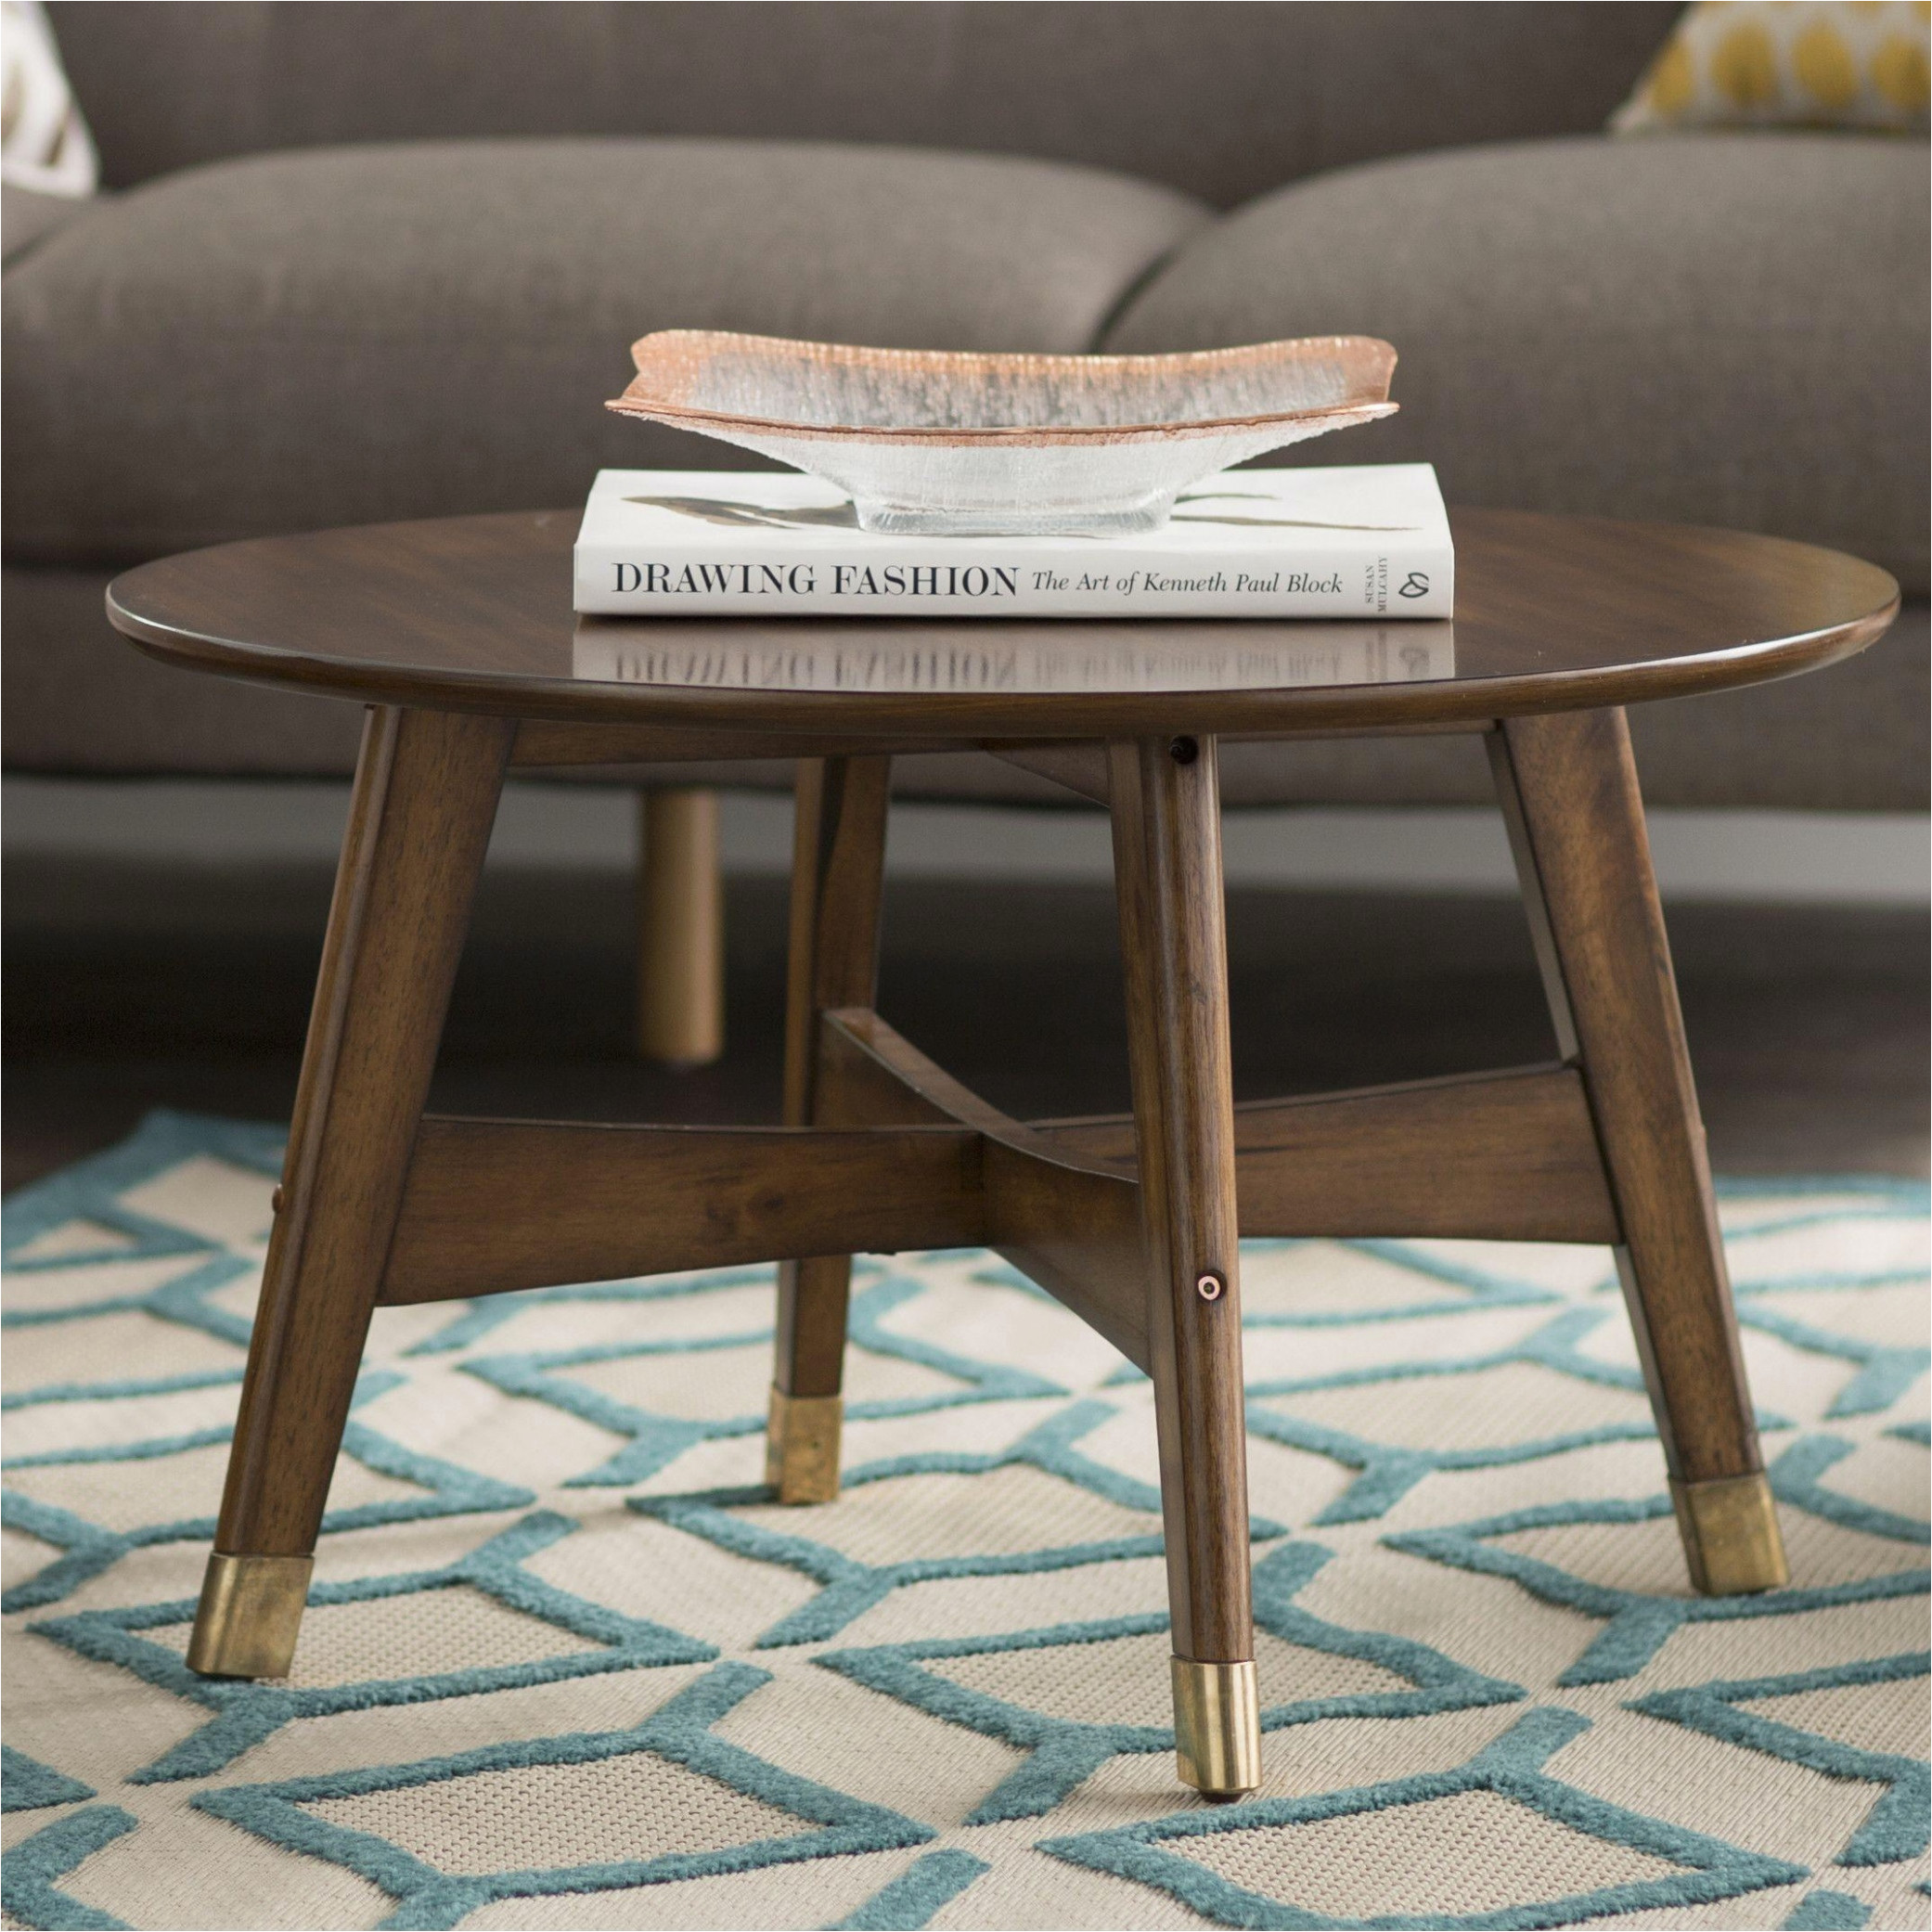 diy coffee and end tables distressed side table rabbssteak house pipe leg cool dog cages dining chairs couch height big lots ashley furniture chaise lounge target bookshelf